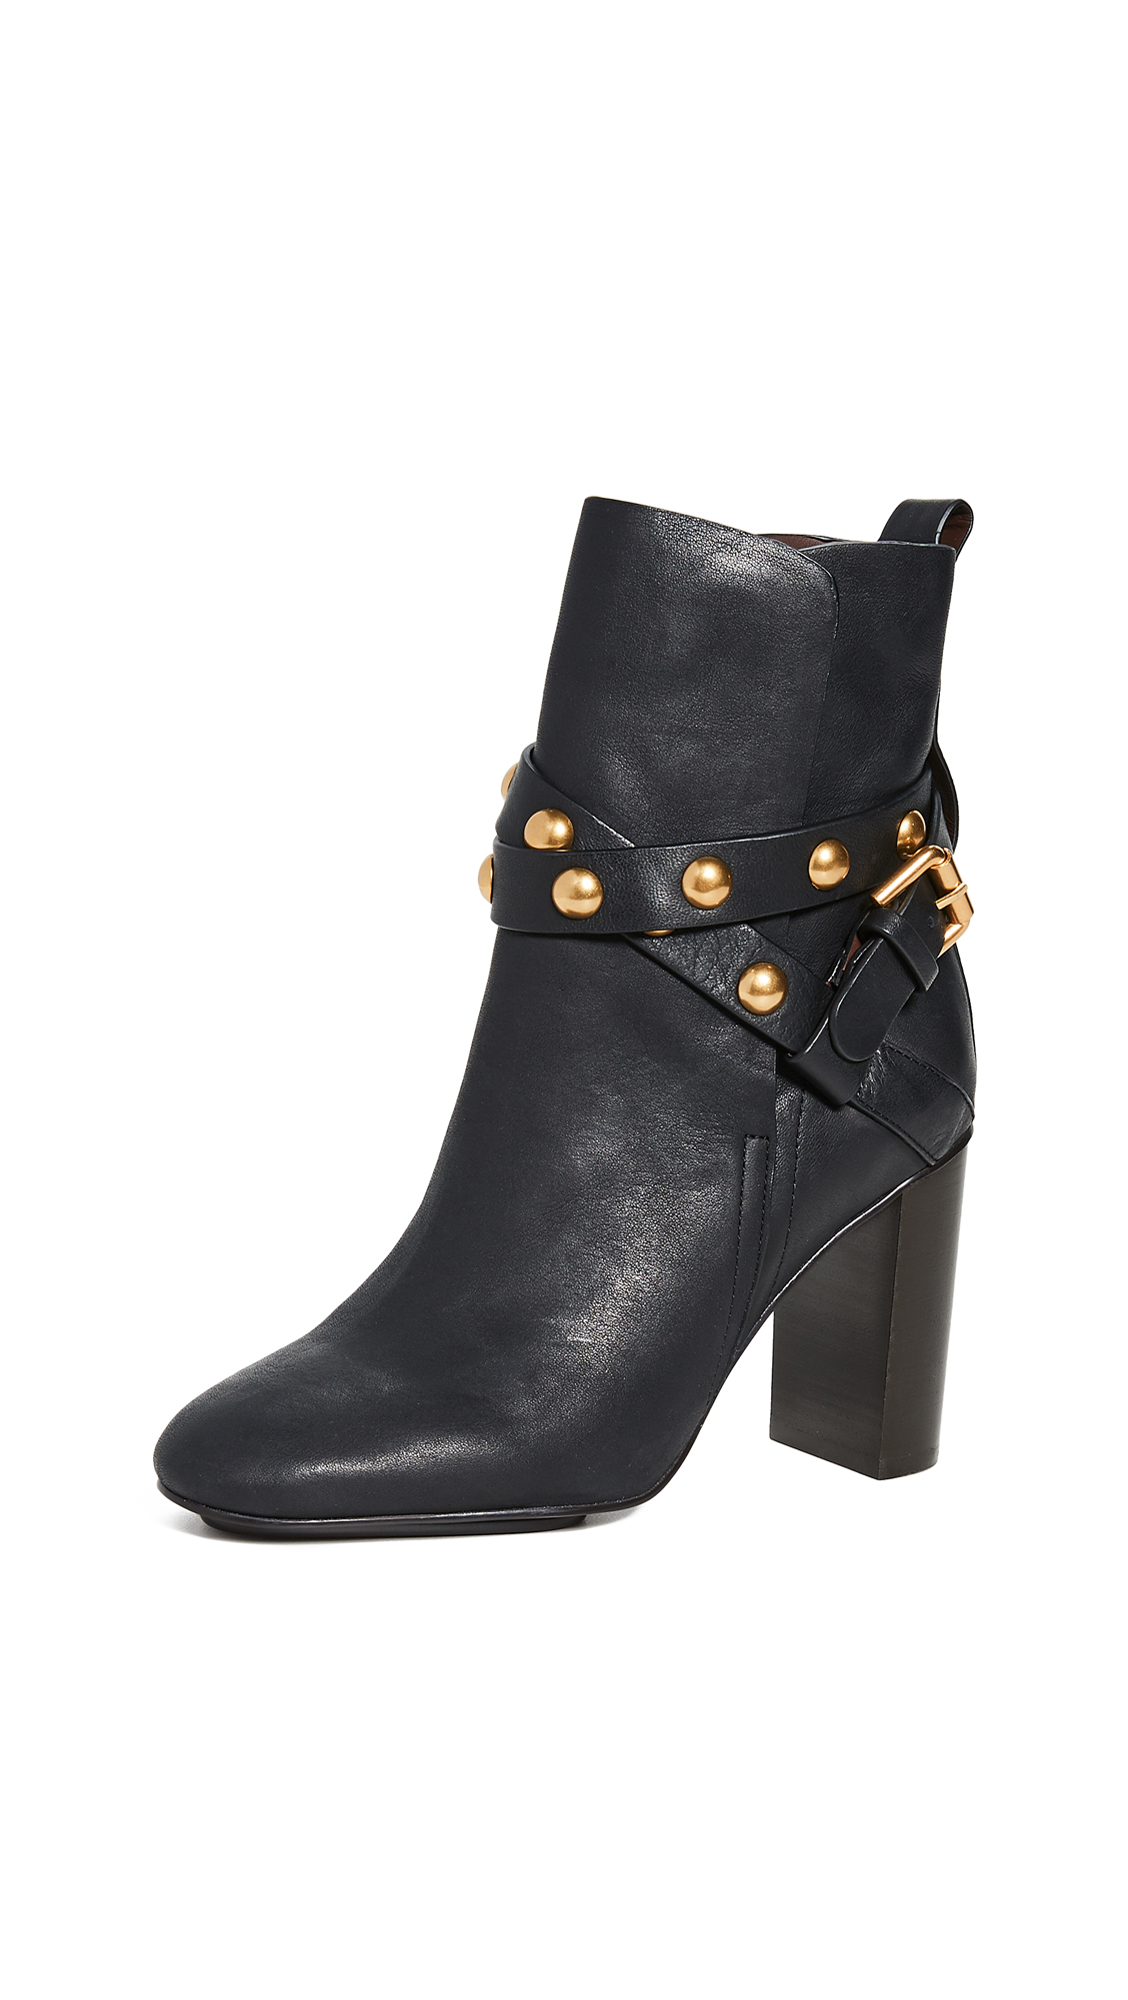 Buy See by Chloe Neo Janis High Heel 90mm Boots online, shop See by Chloe